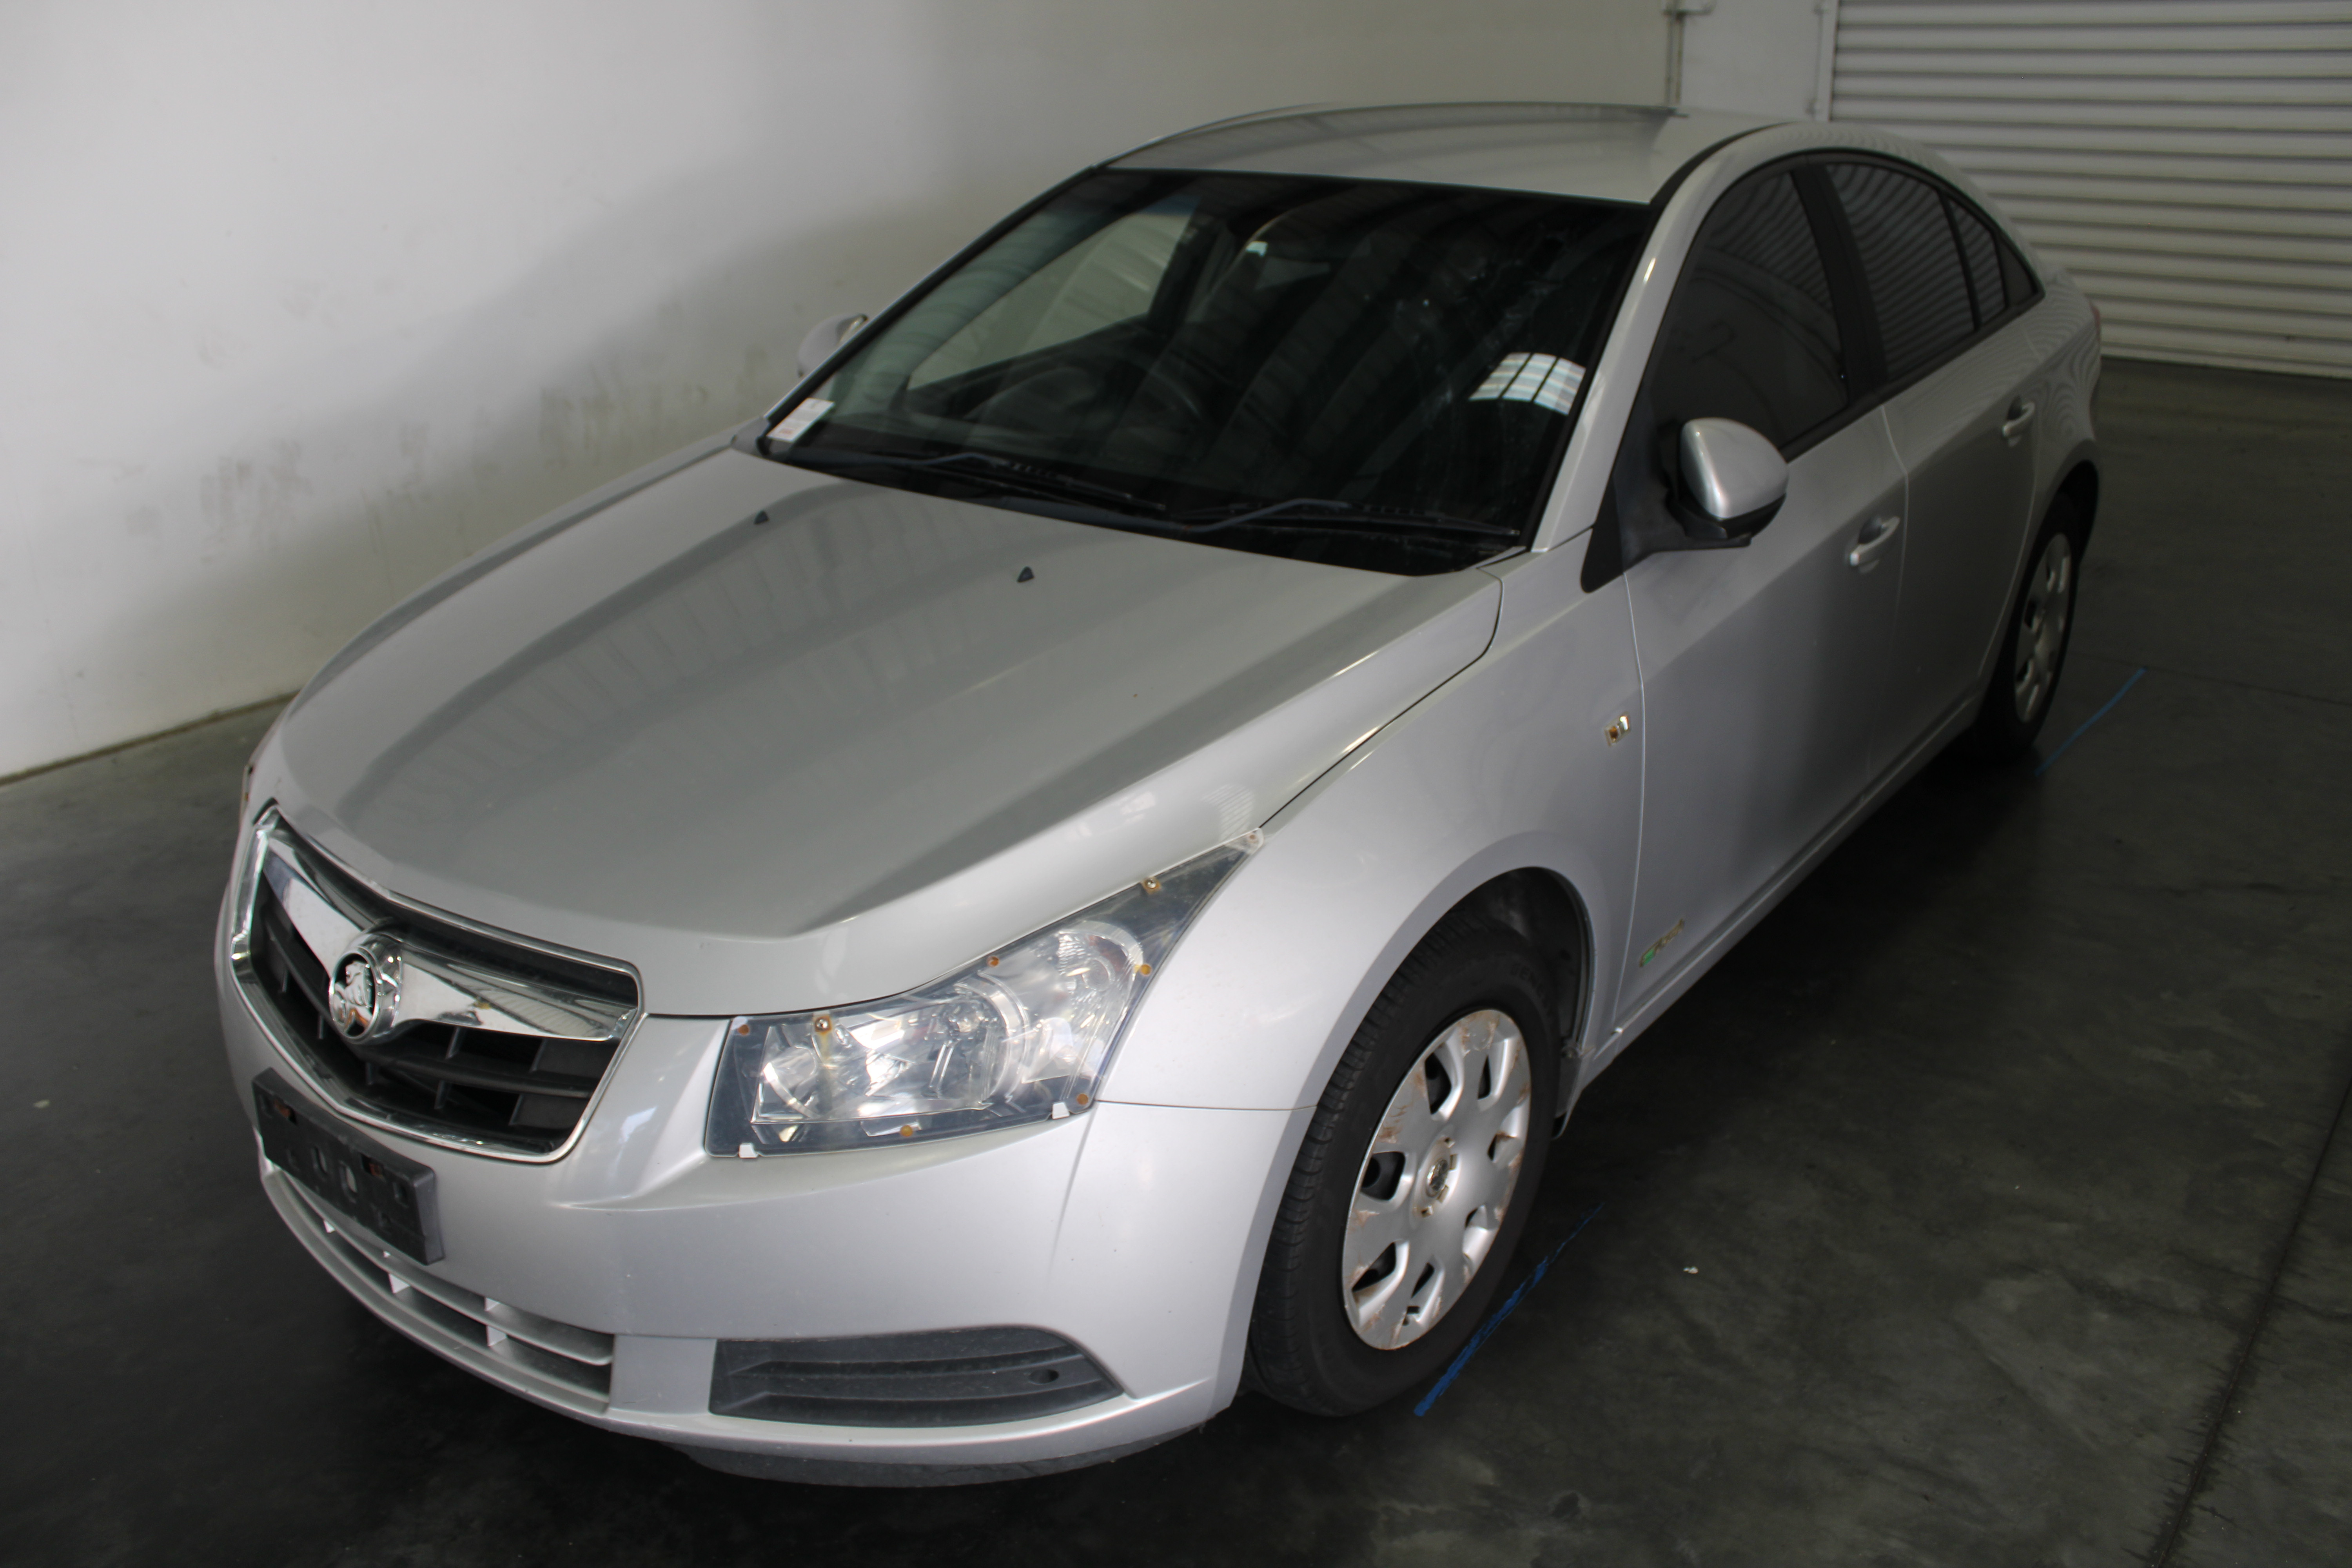 2009 Holden Cruze CD JG Turbo Diesel Sedan 156,186km (WOVR - Inspected)